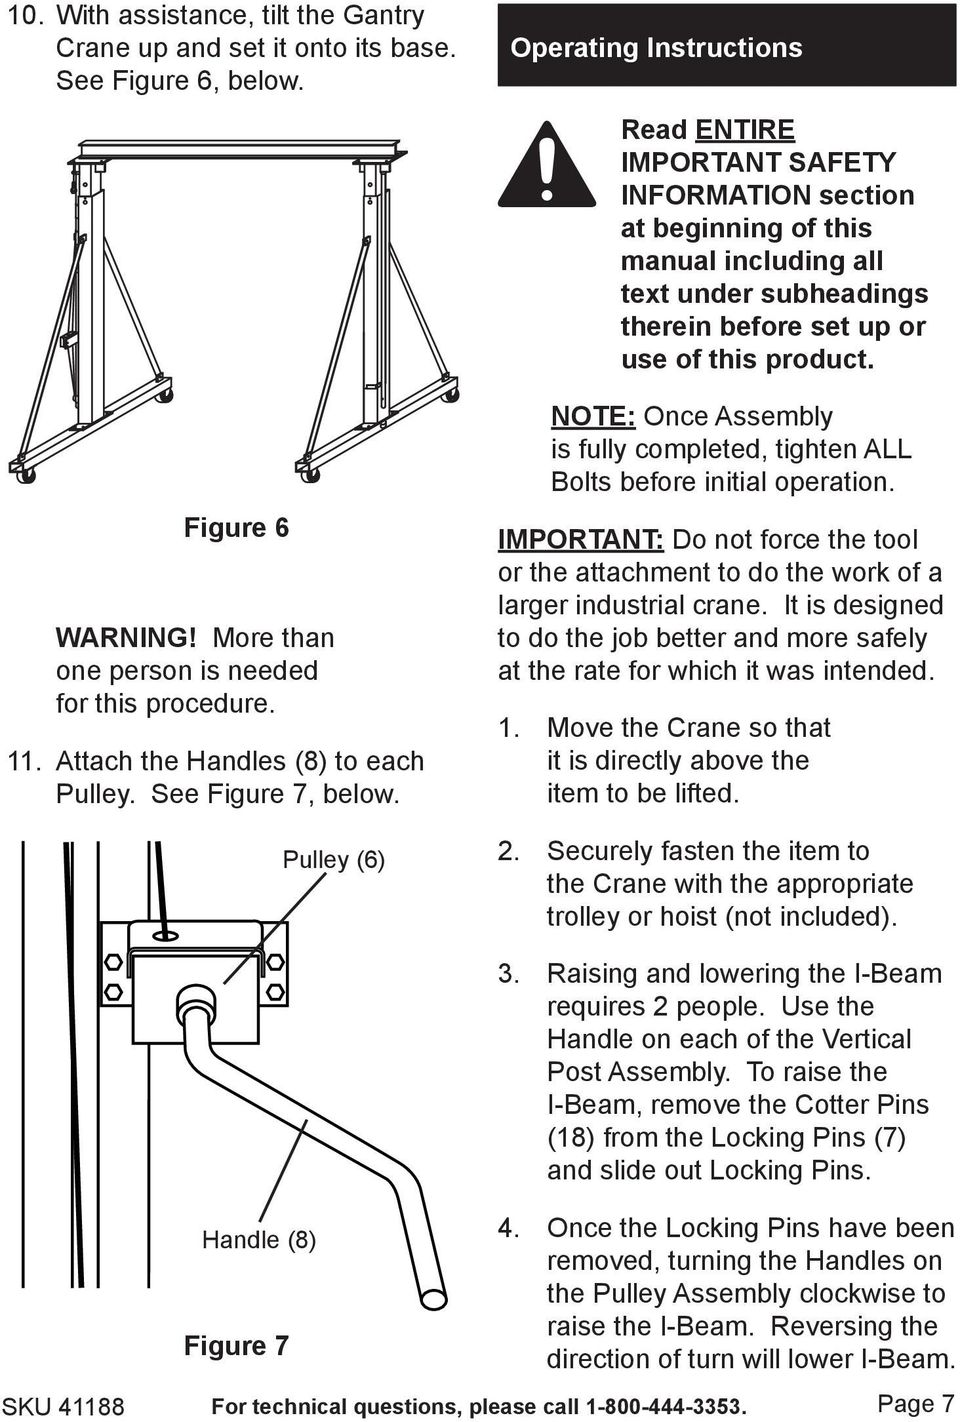 Pulley (6) Operating Instructions Read ENTIRE IMPORTANT SAFETY INFORMATION section at beginning of this manual including all text under subheadings therein before set up or use of this product.